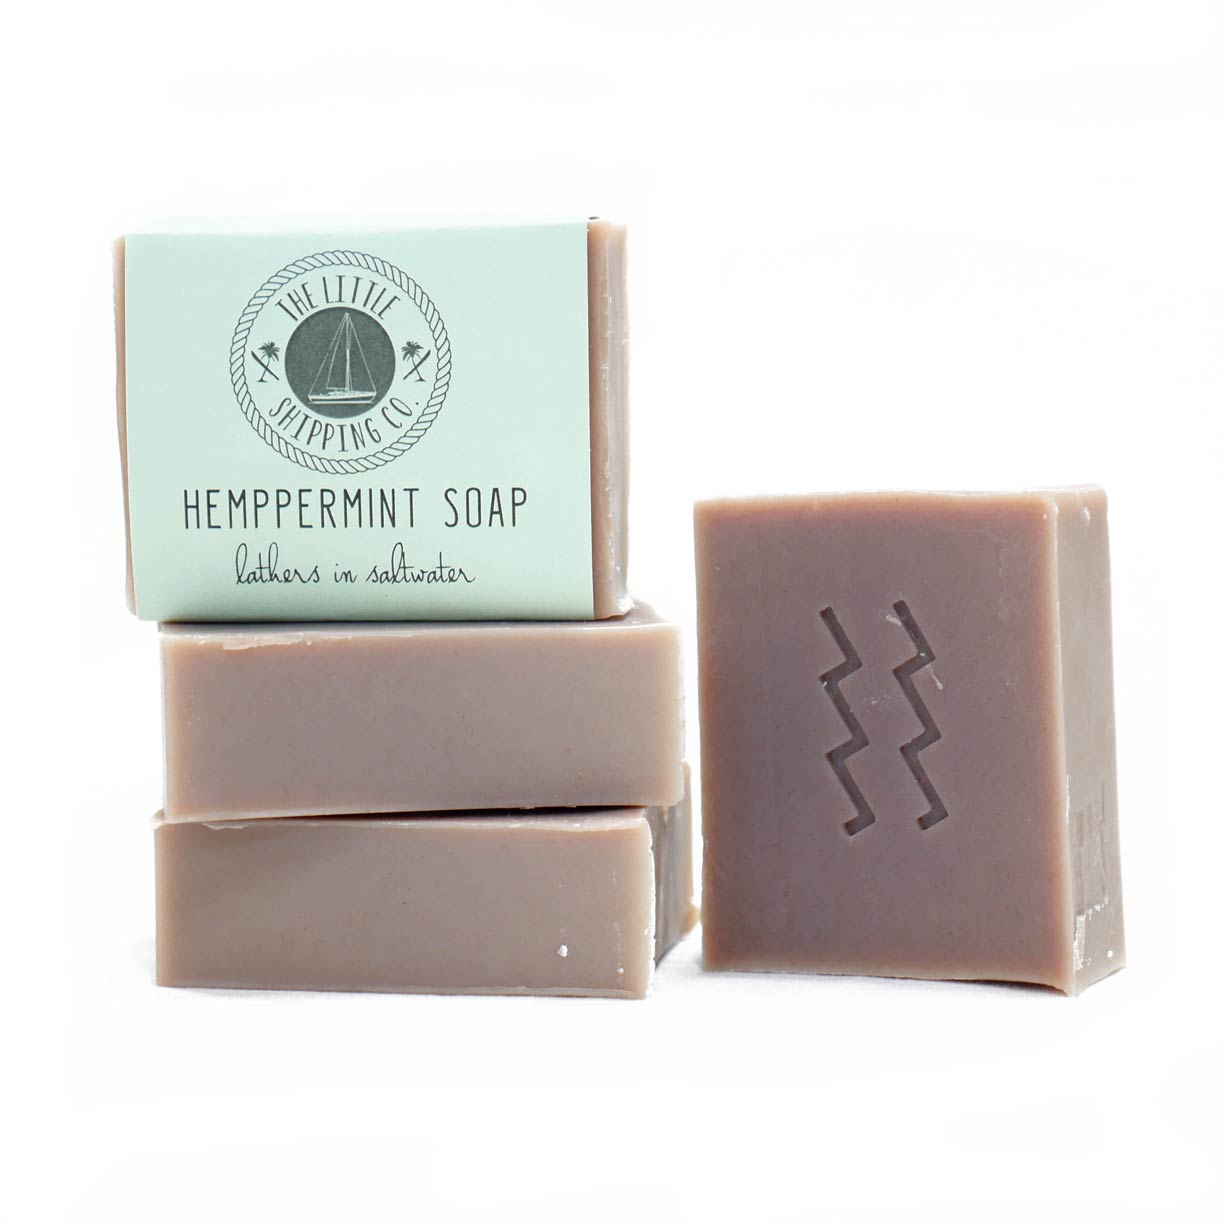 Hemppermint sailor soap, hemp extract and peppermint, lathers in saltwater, palm oil free, made with virgin coconut oil